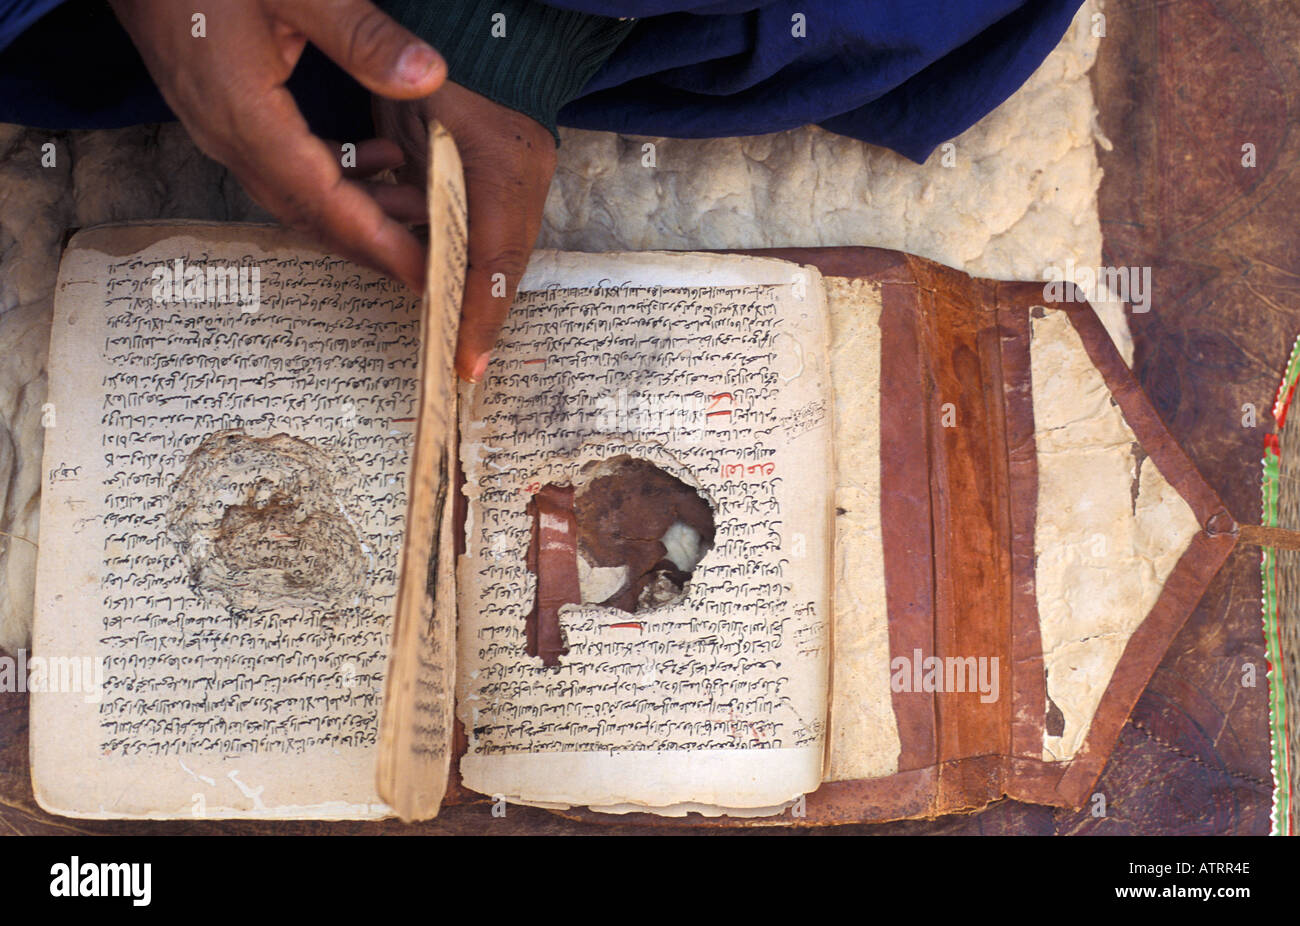 Hundreds years old hand written books eaten by rats in Chinguetti Library in Mauritania - Stock Image